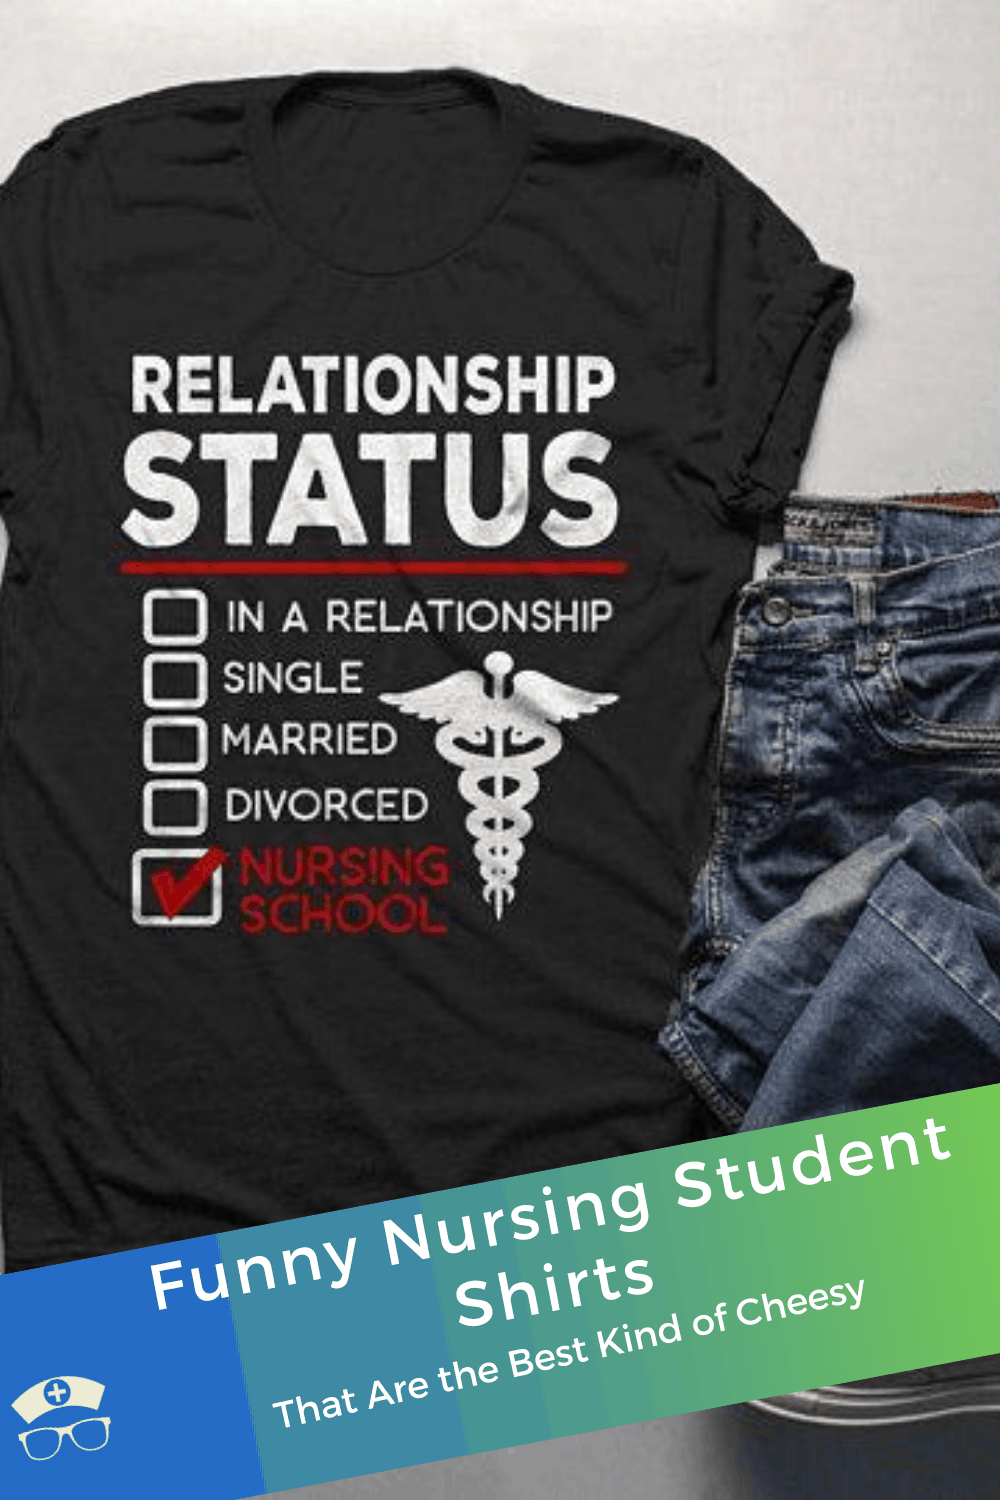 Funny Nursing Student Shirts That Are the Best Kind of Cheesy. Find a shirt that sums up how you feel about nursing school! These are the best nursing student shirts - cheesy, funny, and totally you! #thenerdynurse #nurse #nurses #nursingstudent #nursetshirts #giftsfornurses